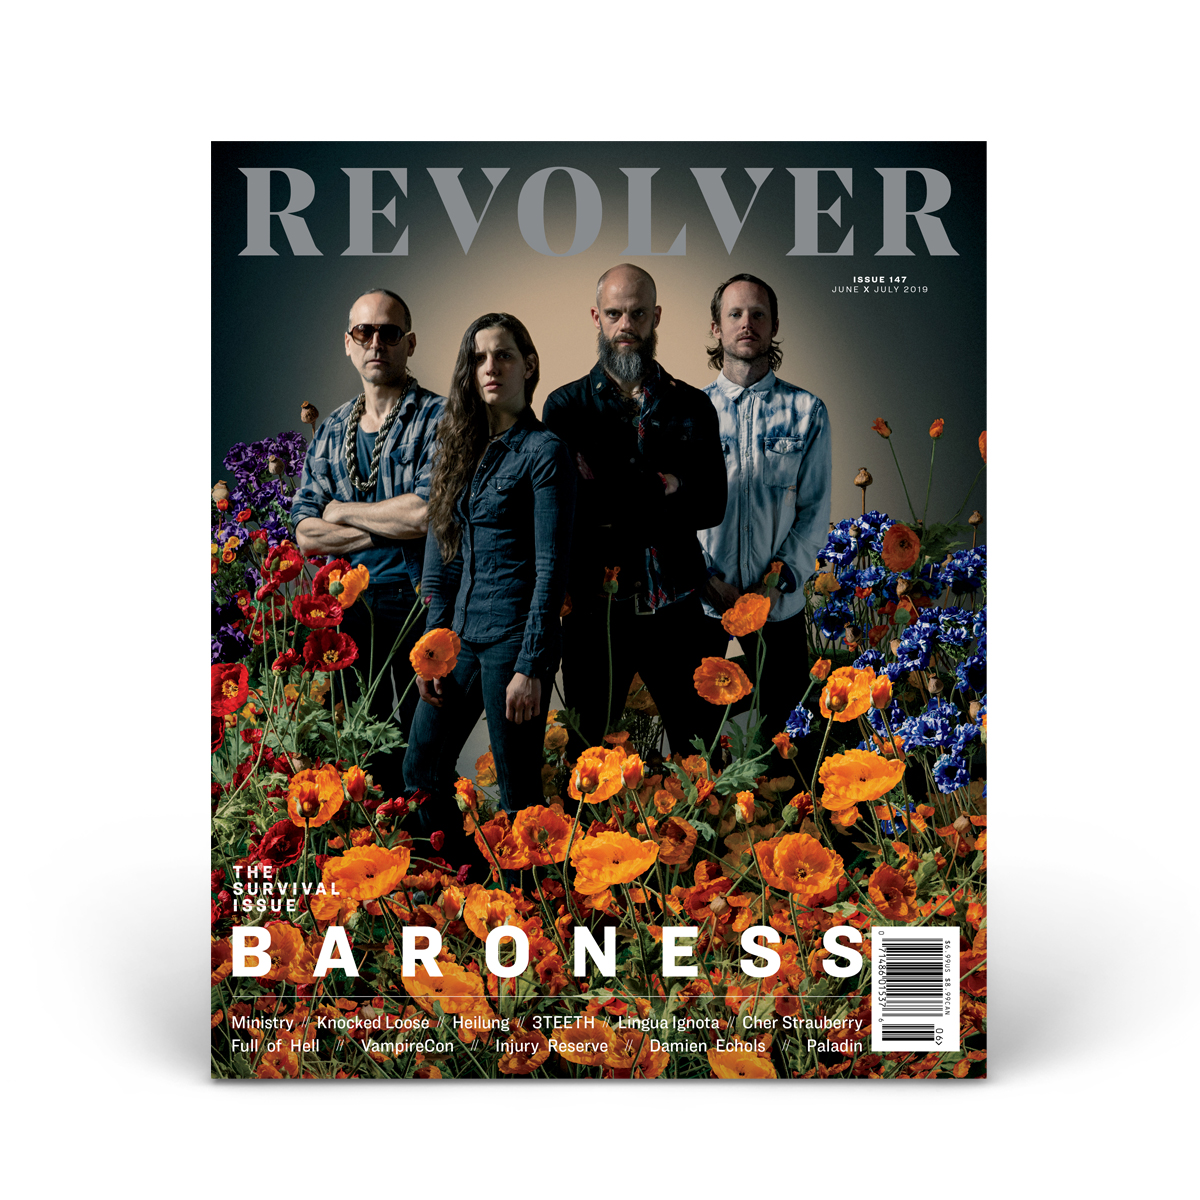 JUNE/JULY 2019 SURVIVAL ISSUE FEATURING BARONESS — COVER 3 OF 5